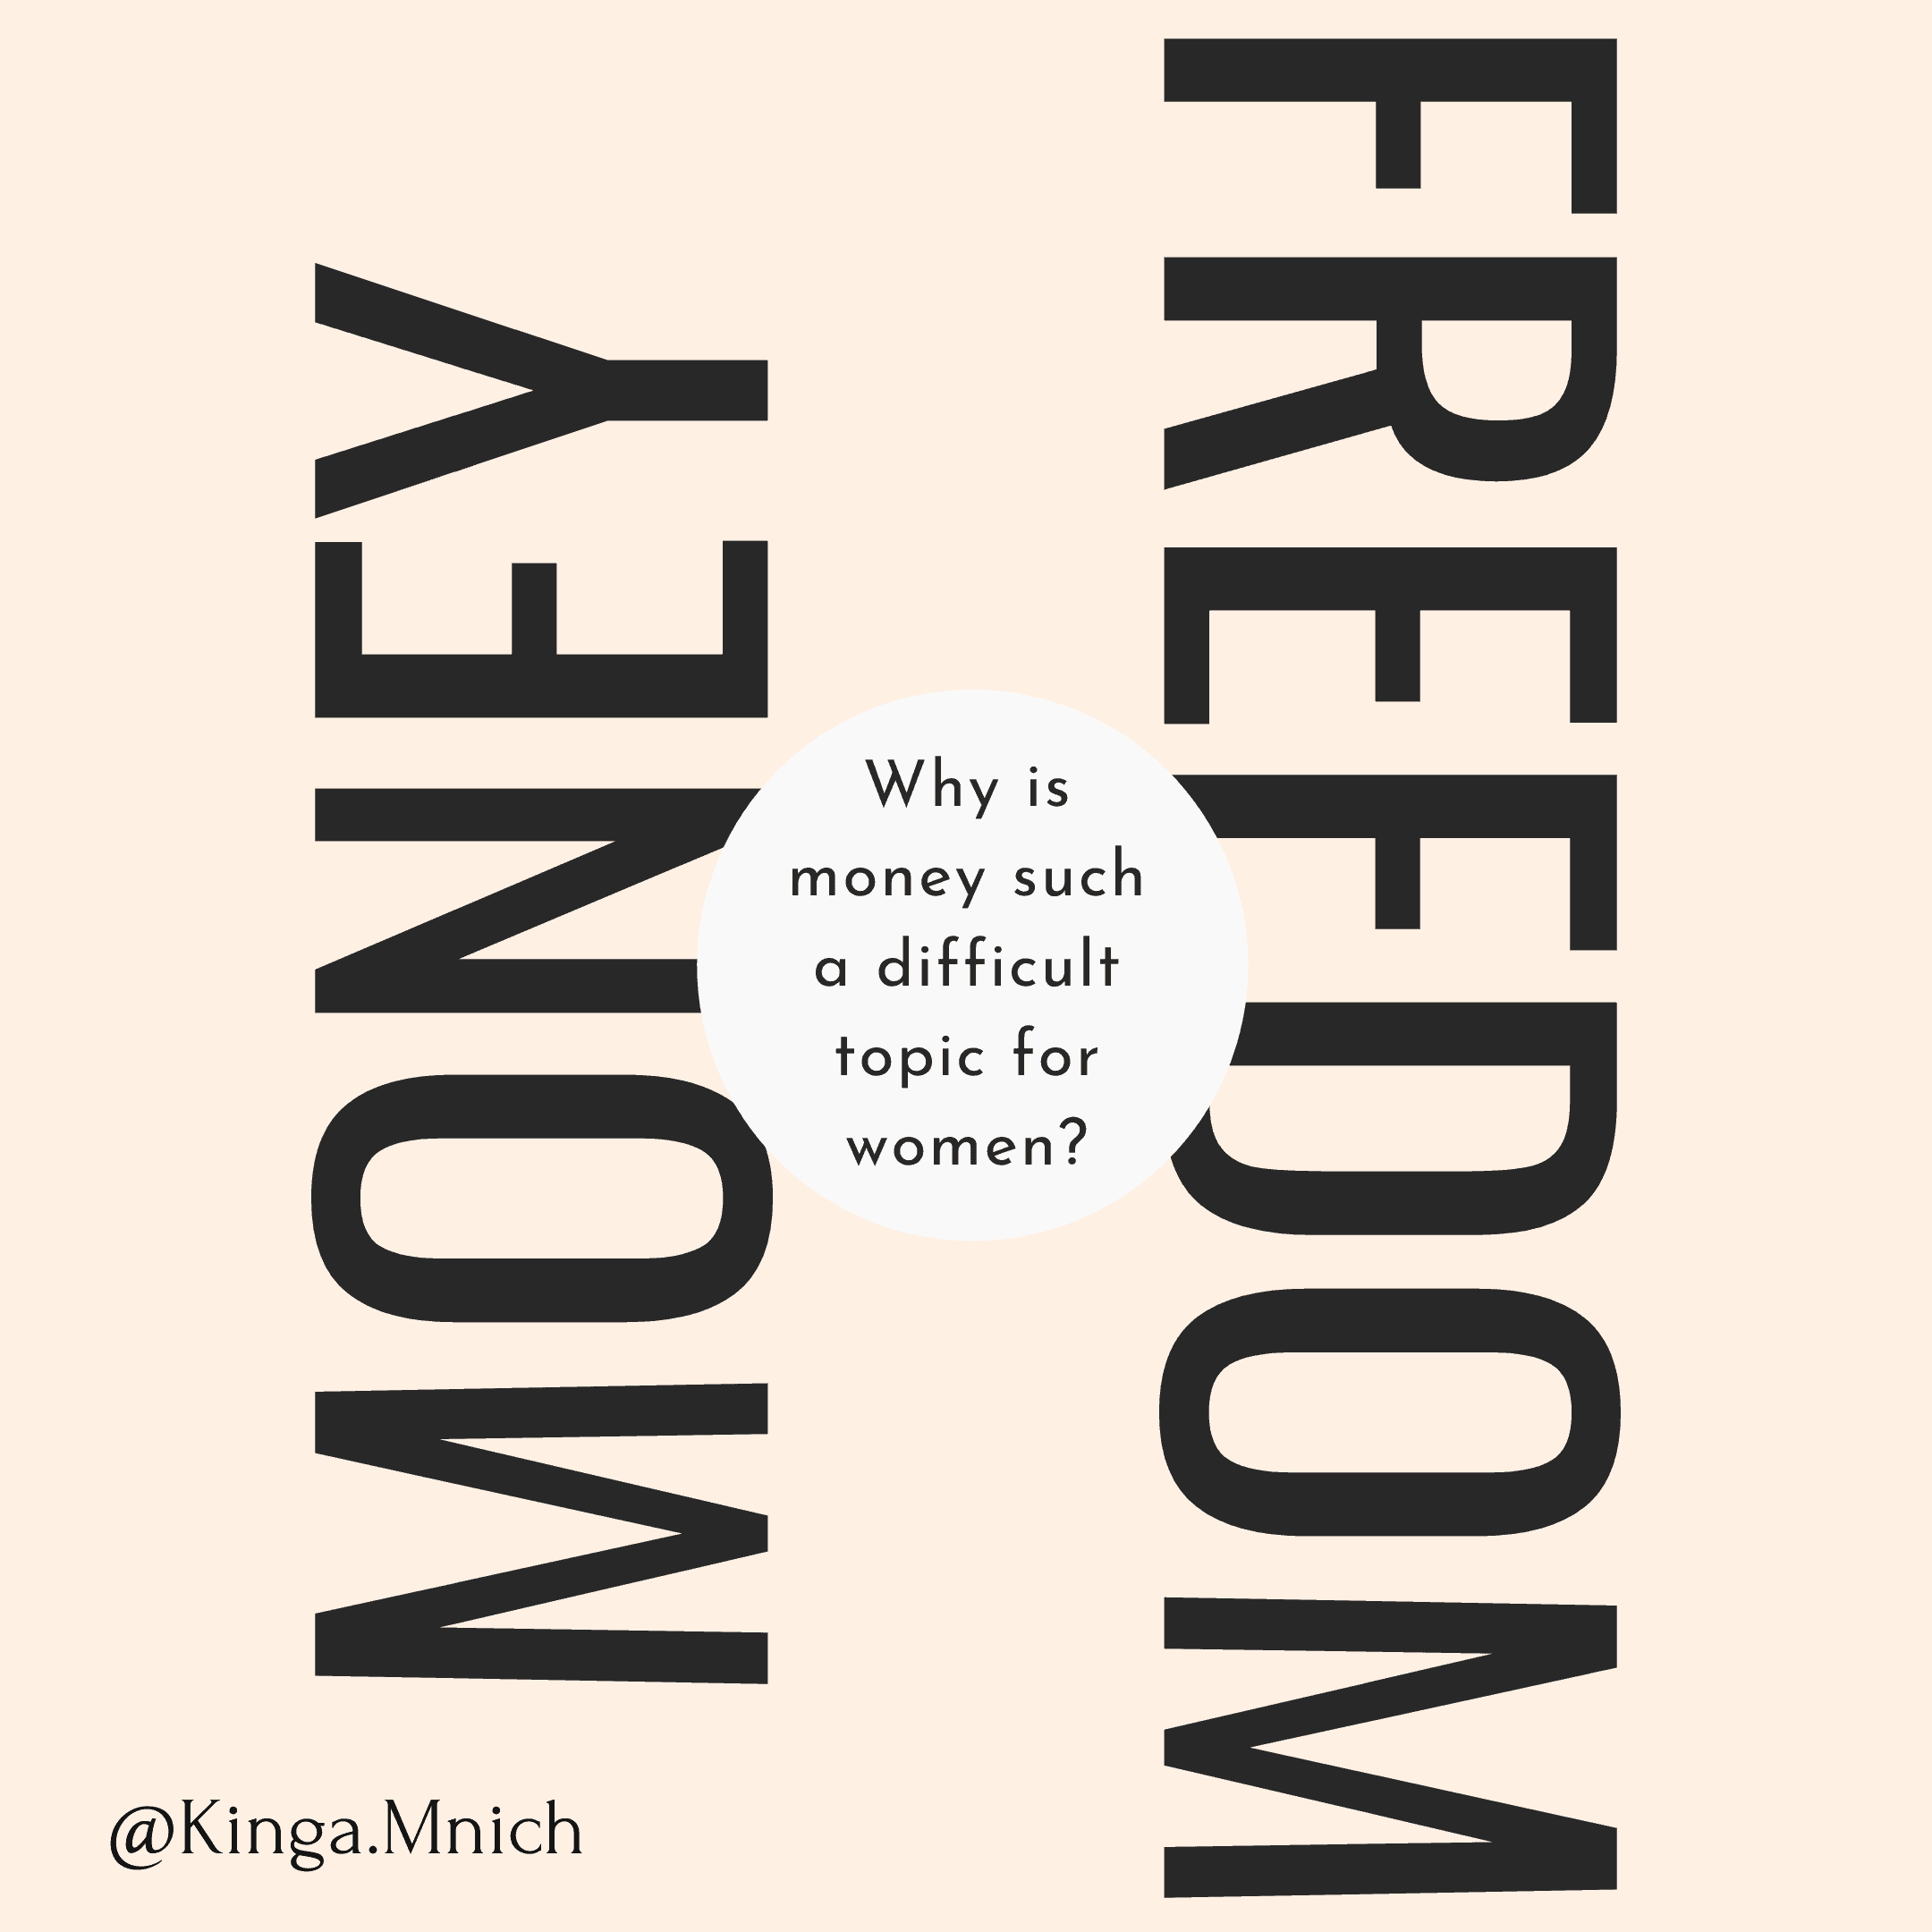 Why is money a difficult topic for women